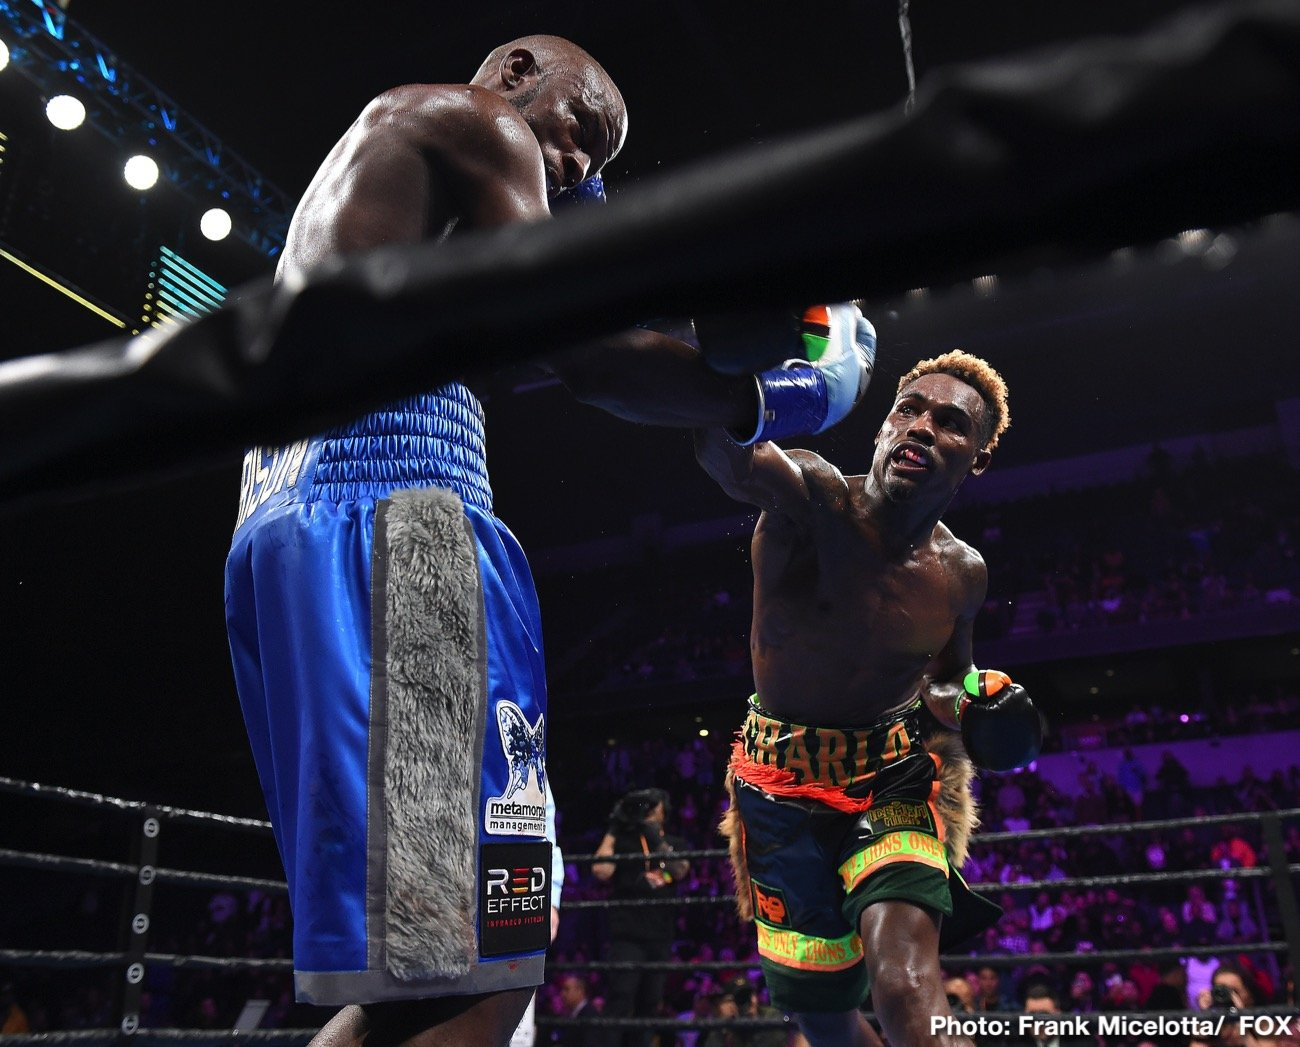 Tony Harrison -  Jermell Charlo reclaimed the WBC Super Welterweight Championship from Tony Harrison with a blistering stoppage at 2:08 of the 11th round in a FOX PBC Fight Night main event and on FOX Deportes from Toyota Arena in Ontario, Calif.